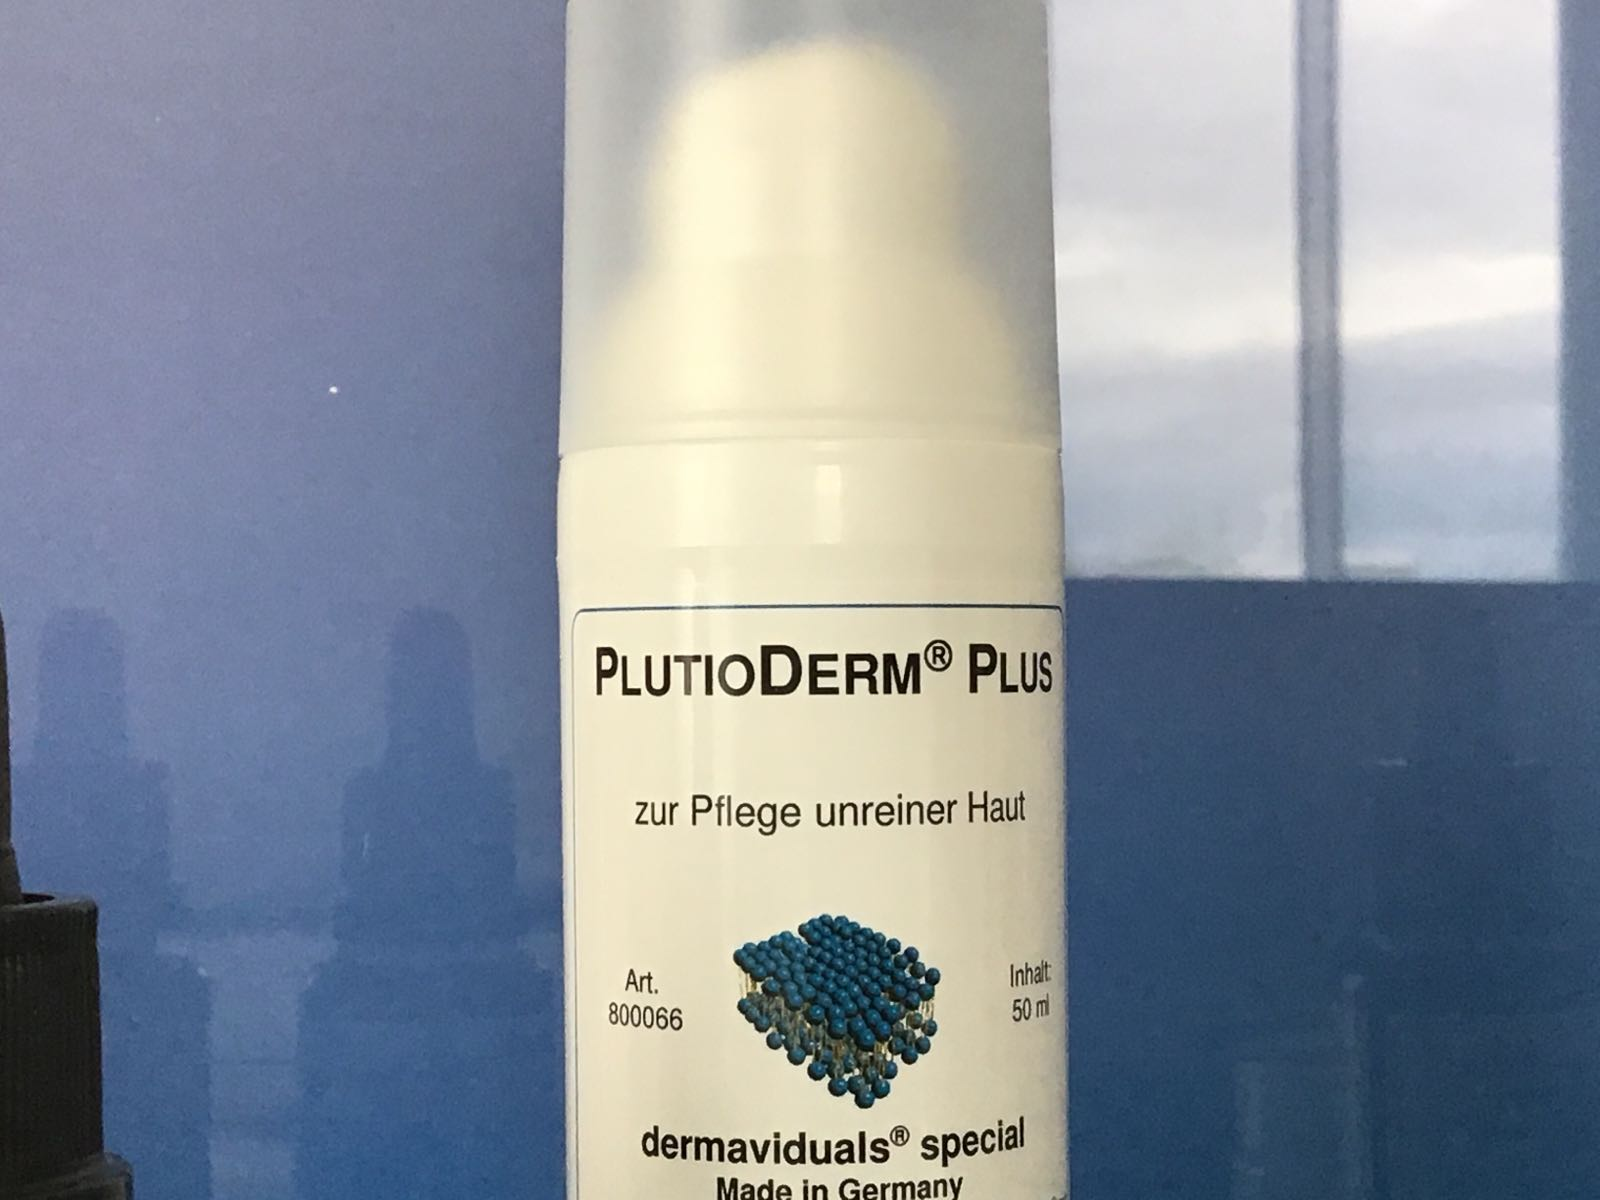 Plutioderm Plus 50ml